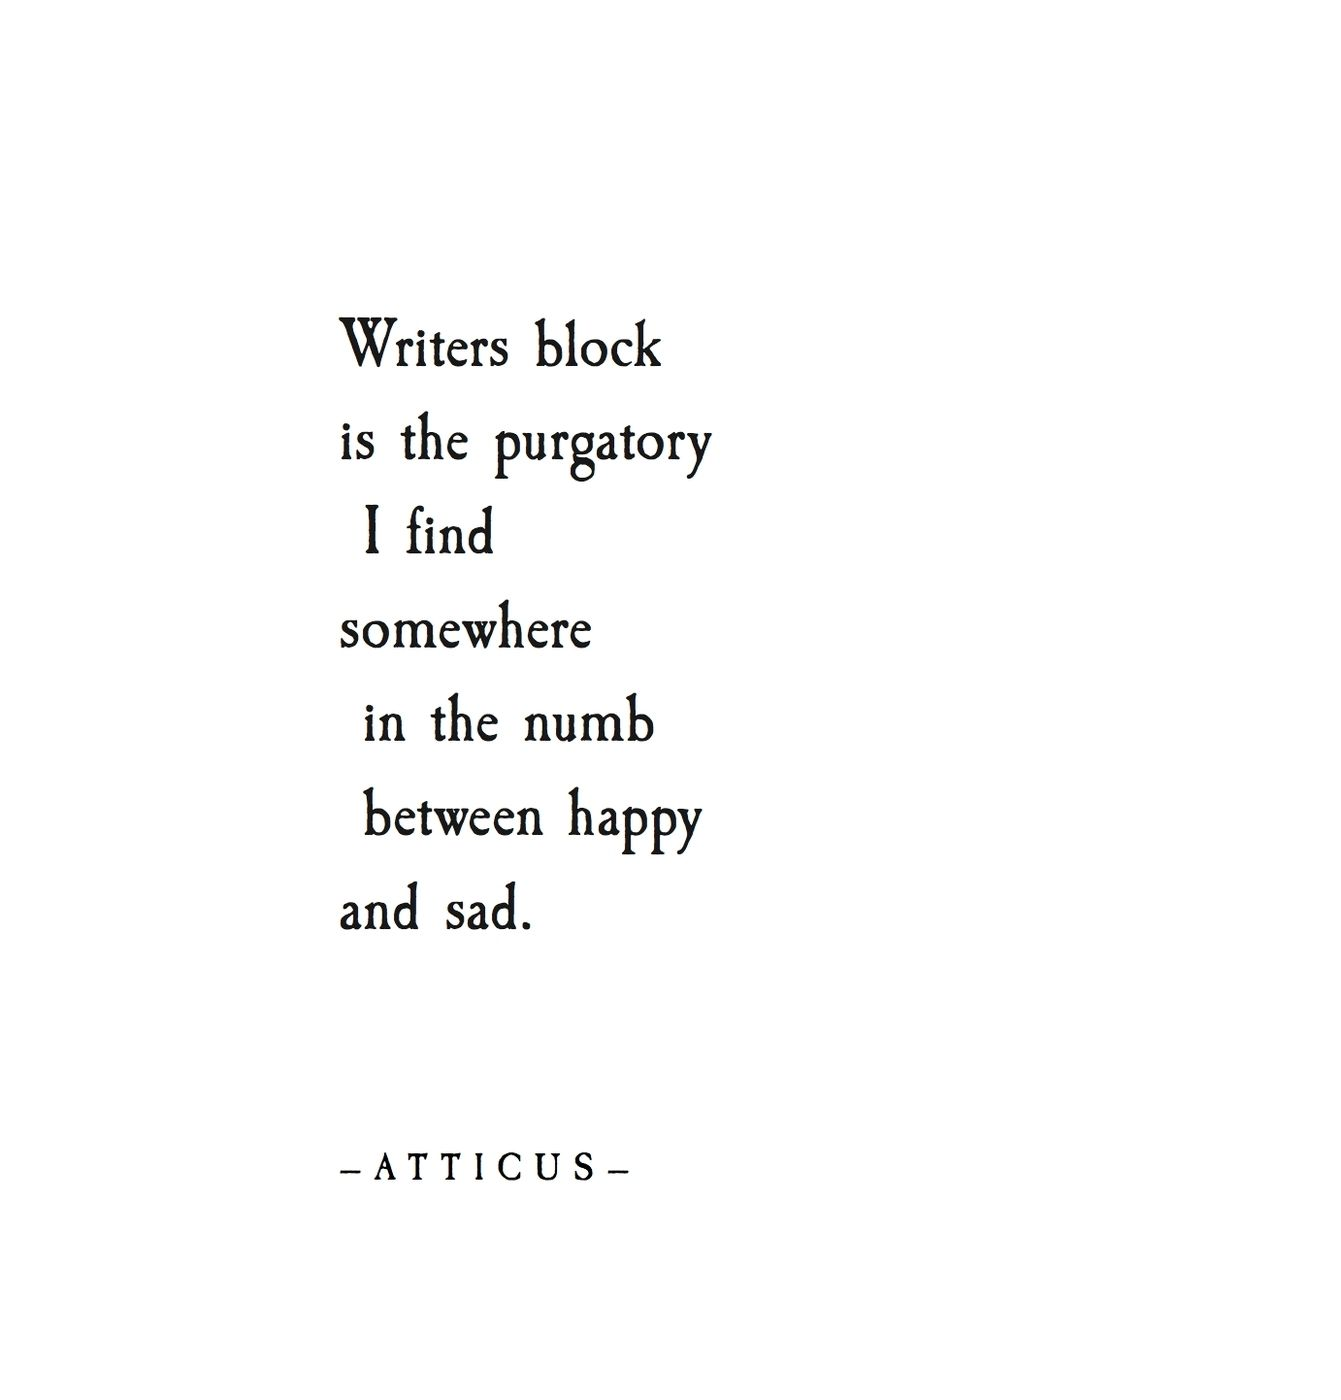 Saying Quotes About Sadness: 'Happy & Sad' #atticuspoetry #atticus #poetry #poem